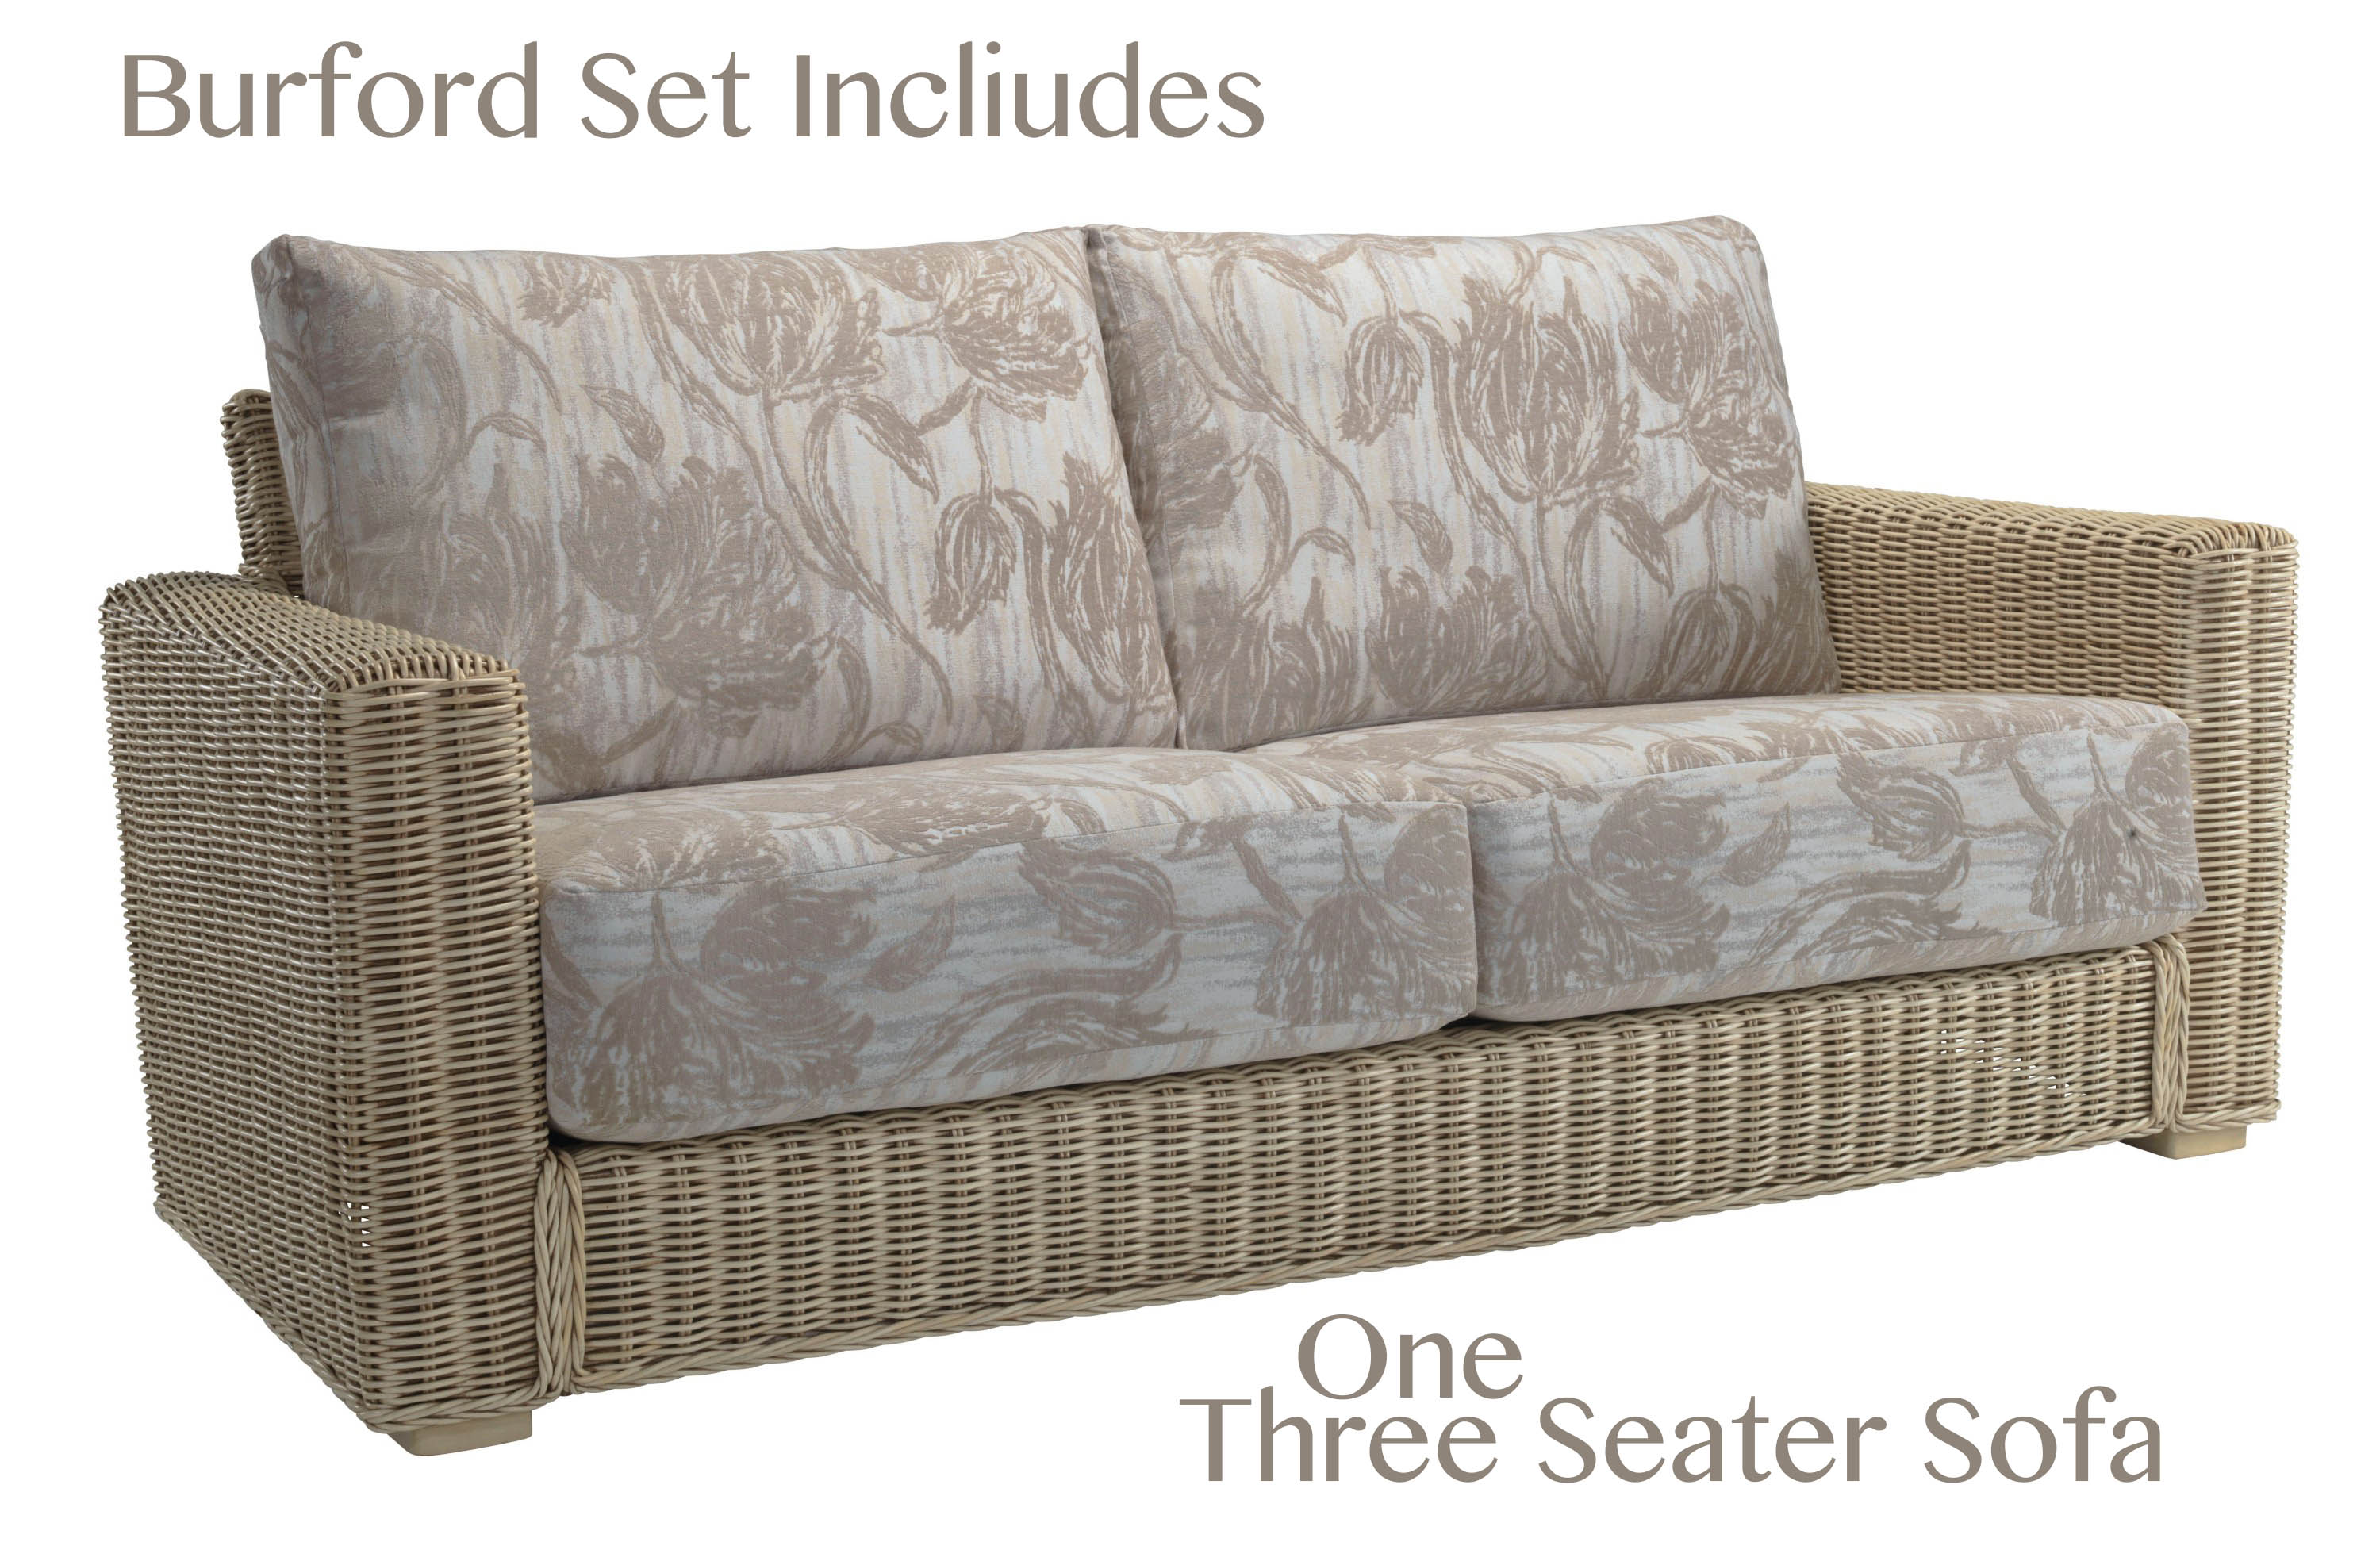 Desser Burford suite includes one three seater sofa & two armchairs